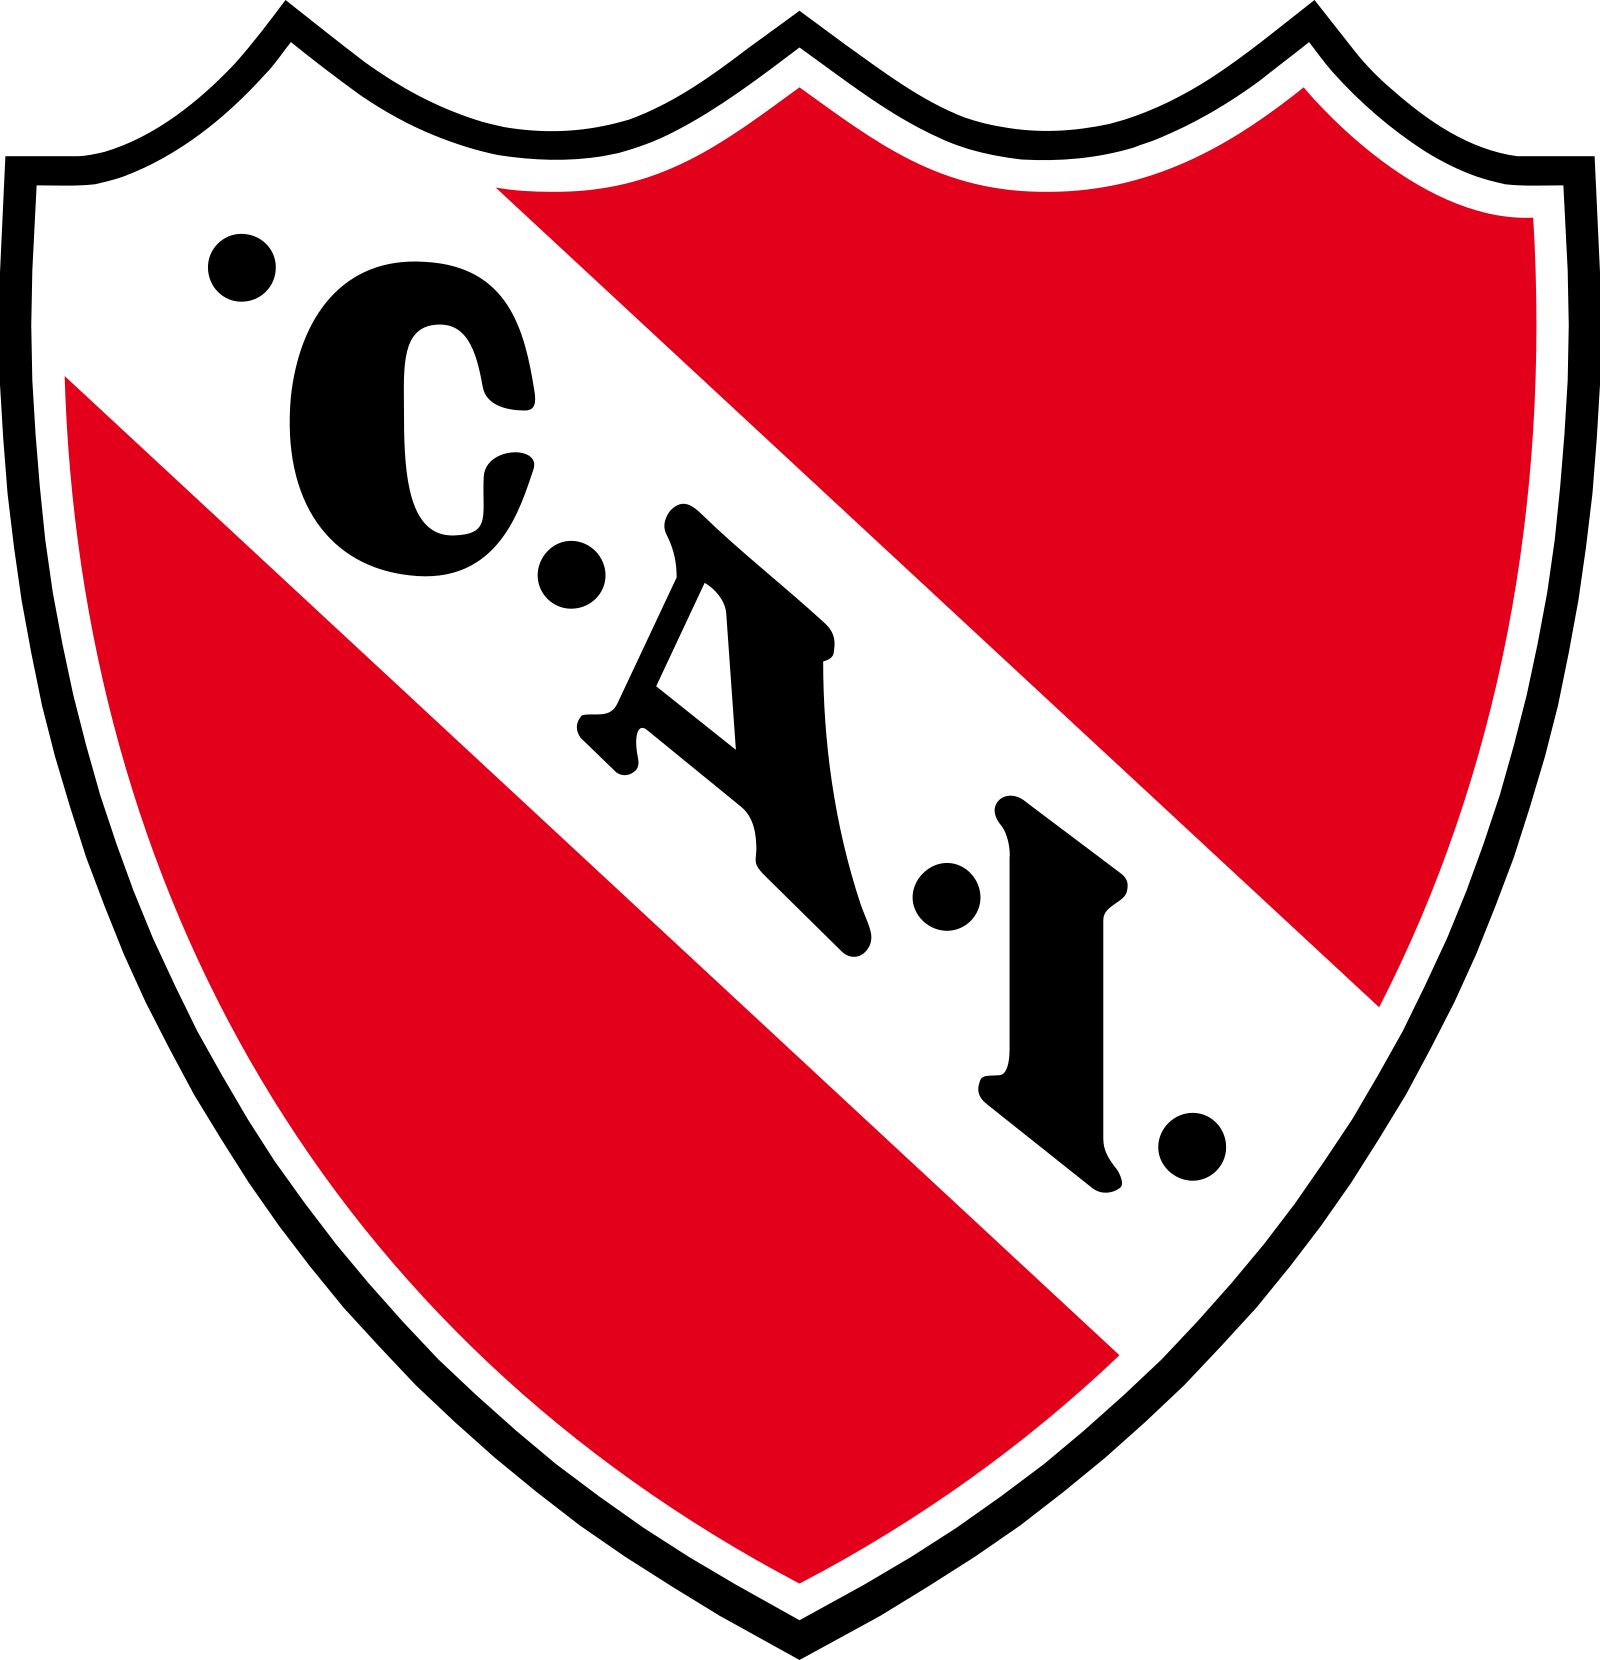 clube independiente logo escudo 2 - Club Atlético Independiente Logo - Escudo